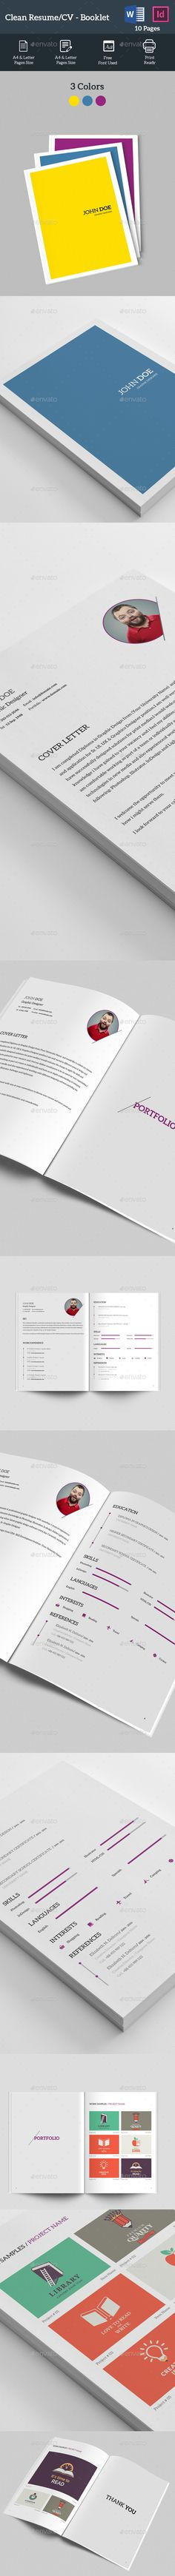 Resume | Stationery printing and Modern resume template